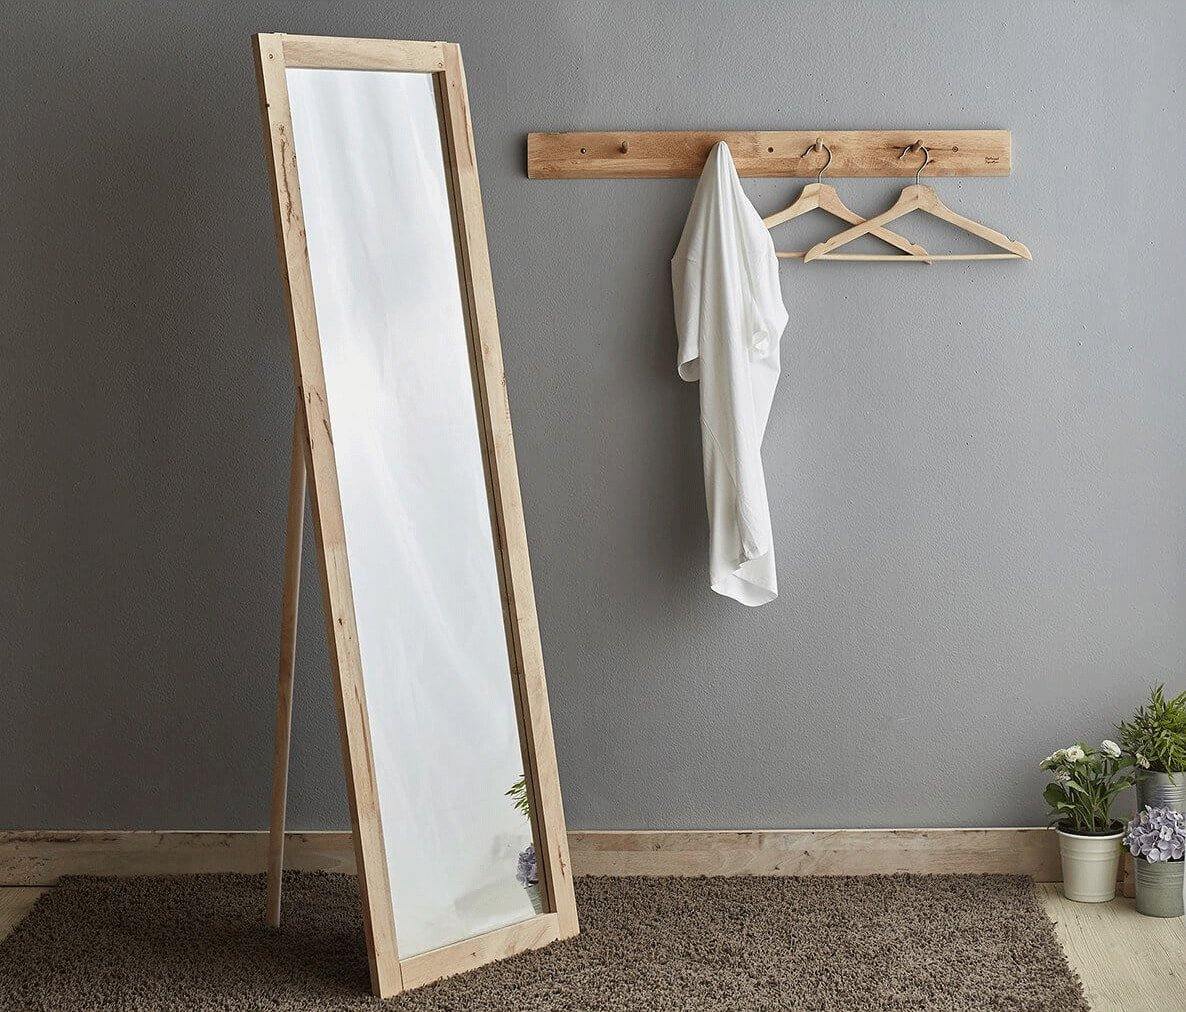 Standing Mirror to Modernise Small Bedroom - Comfort Furniture